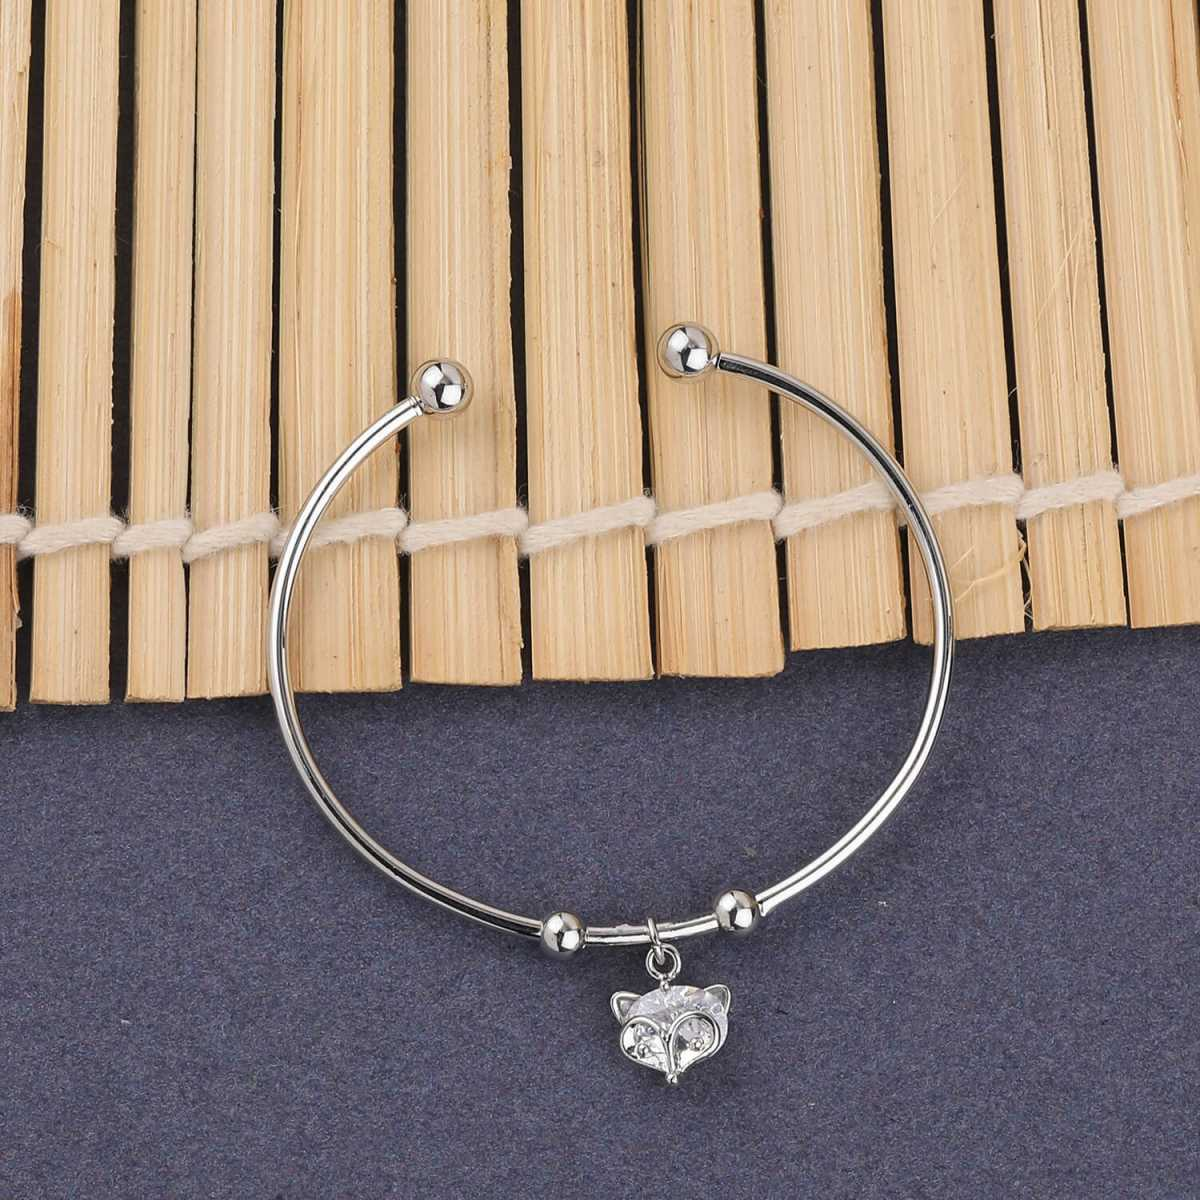 SILVER SHINE Party Wear Designer Adjustable Bracelet With Diamond For Women Girls